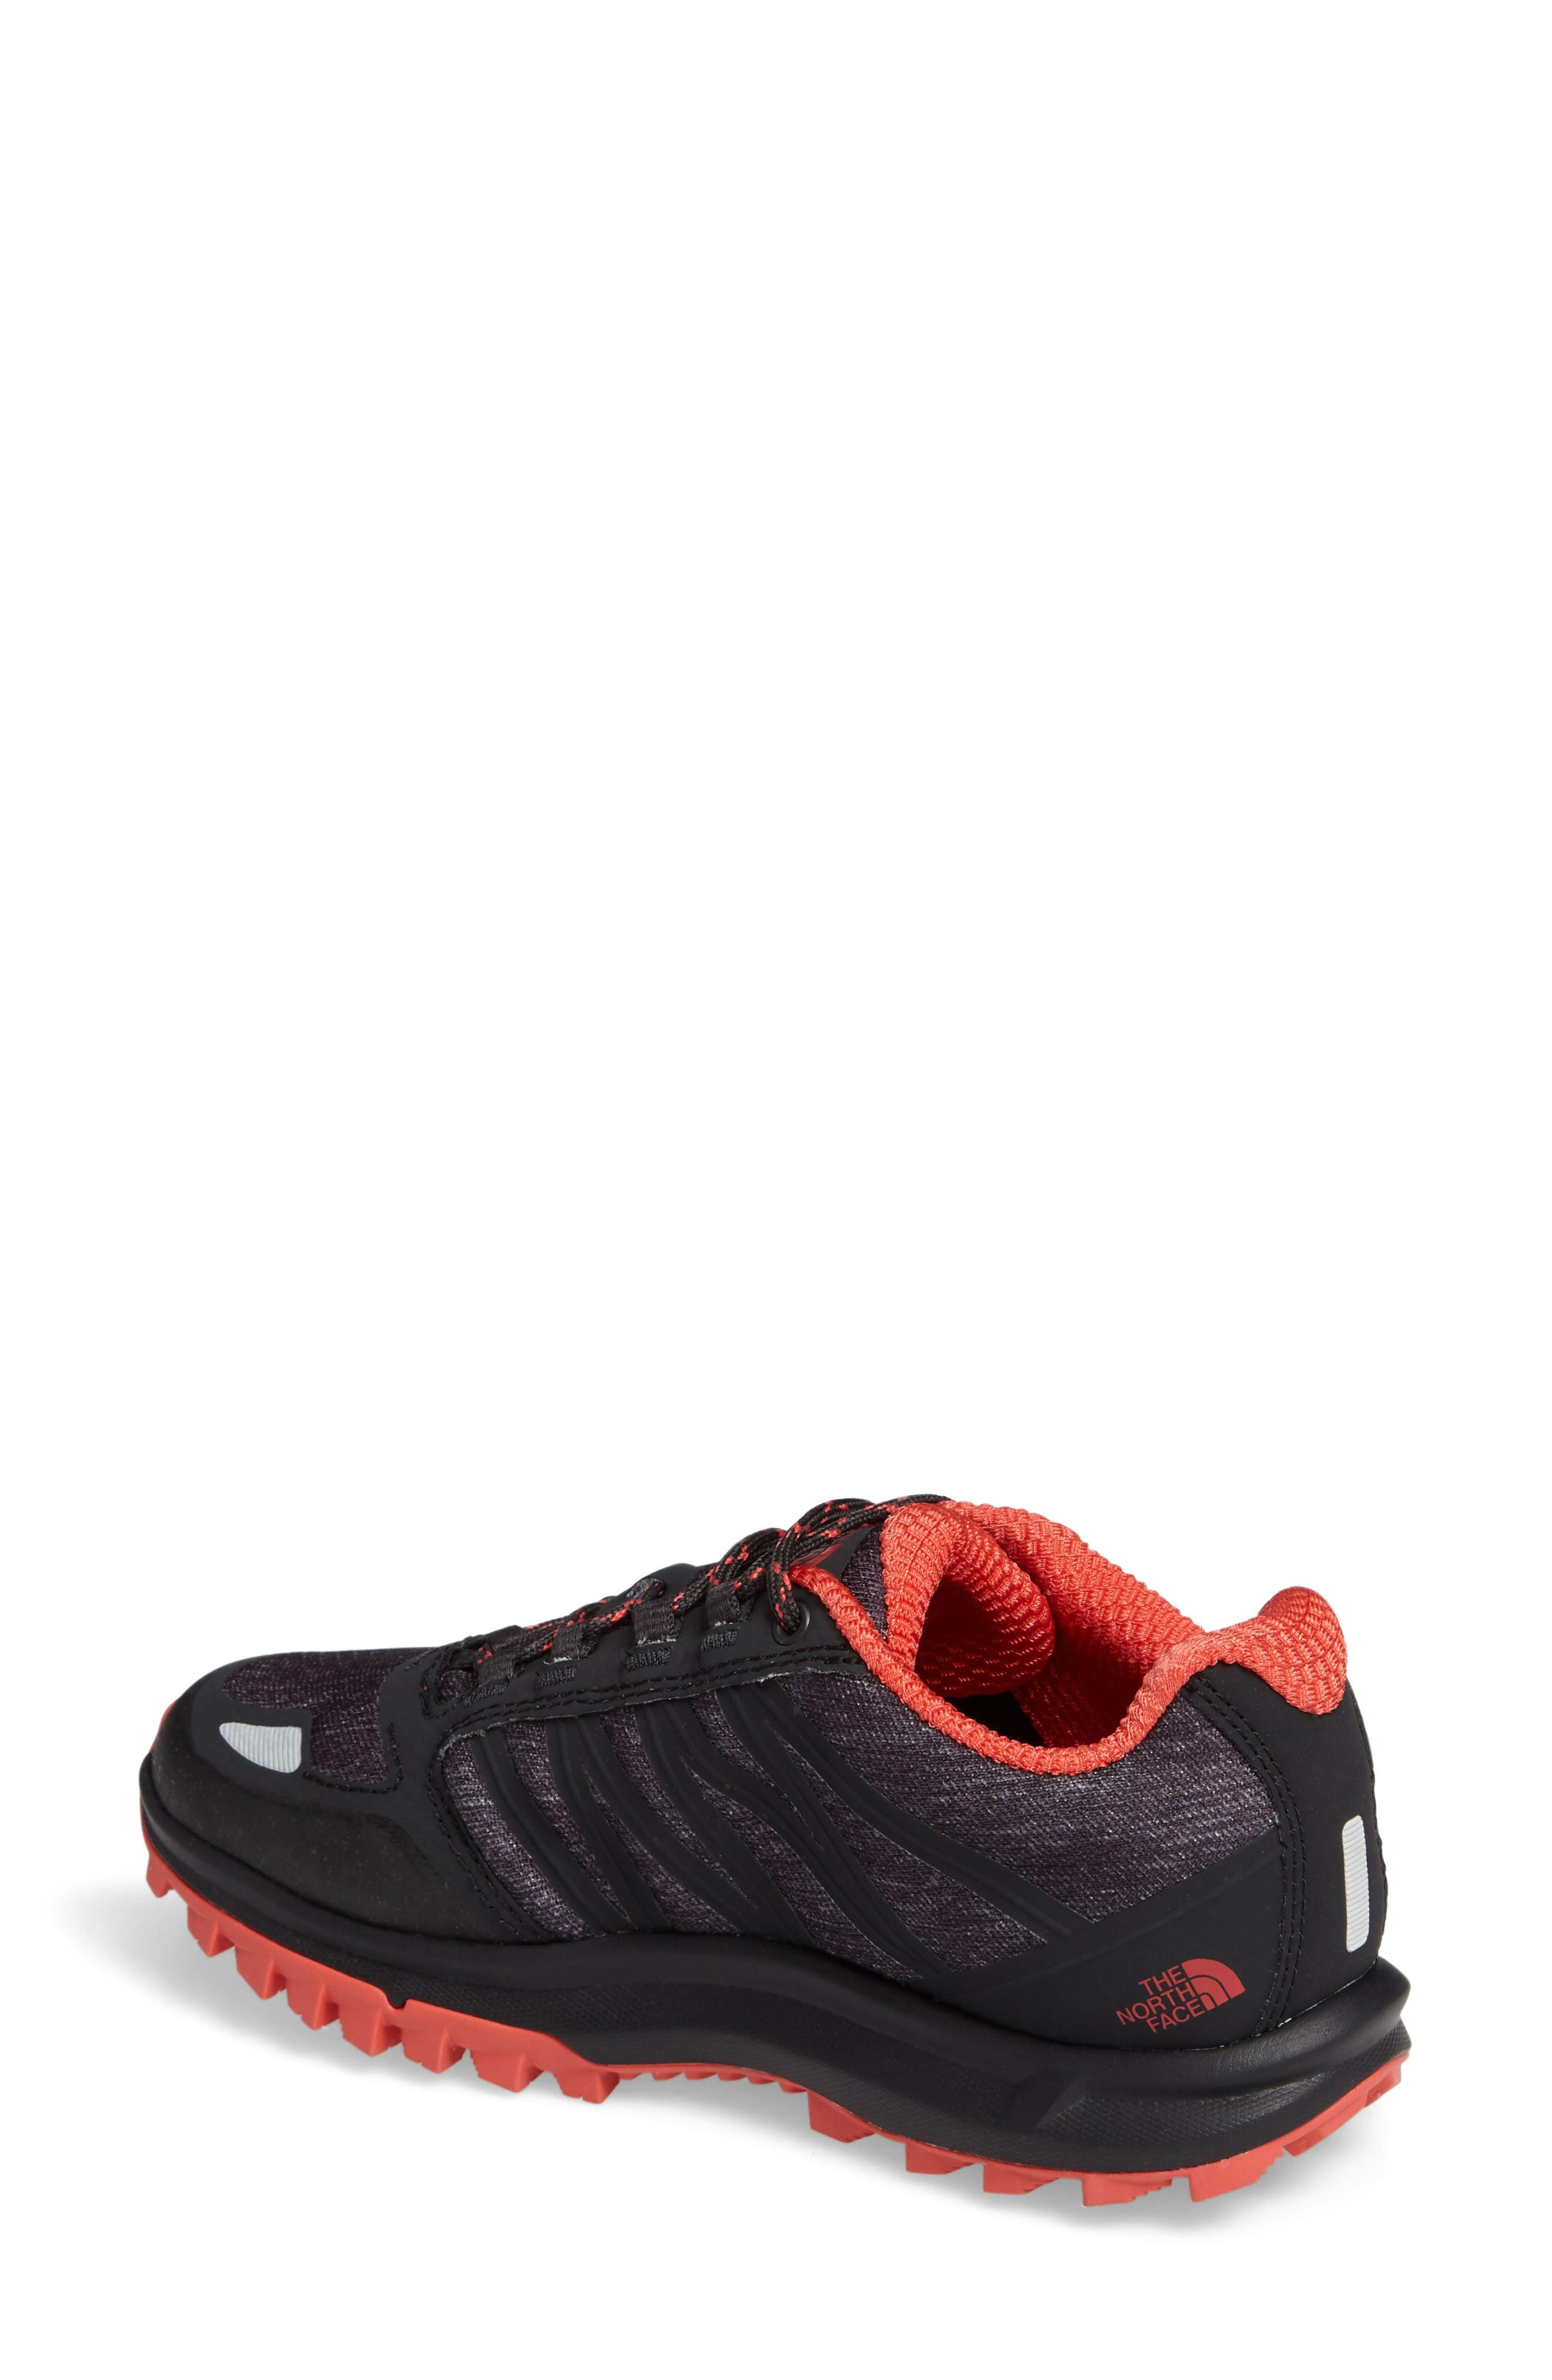 Alternate Image 2  - The North Face Litewave II Trail Running Shoe (Women)